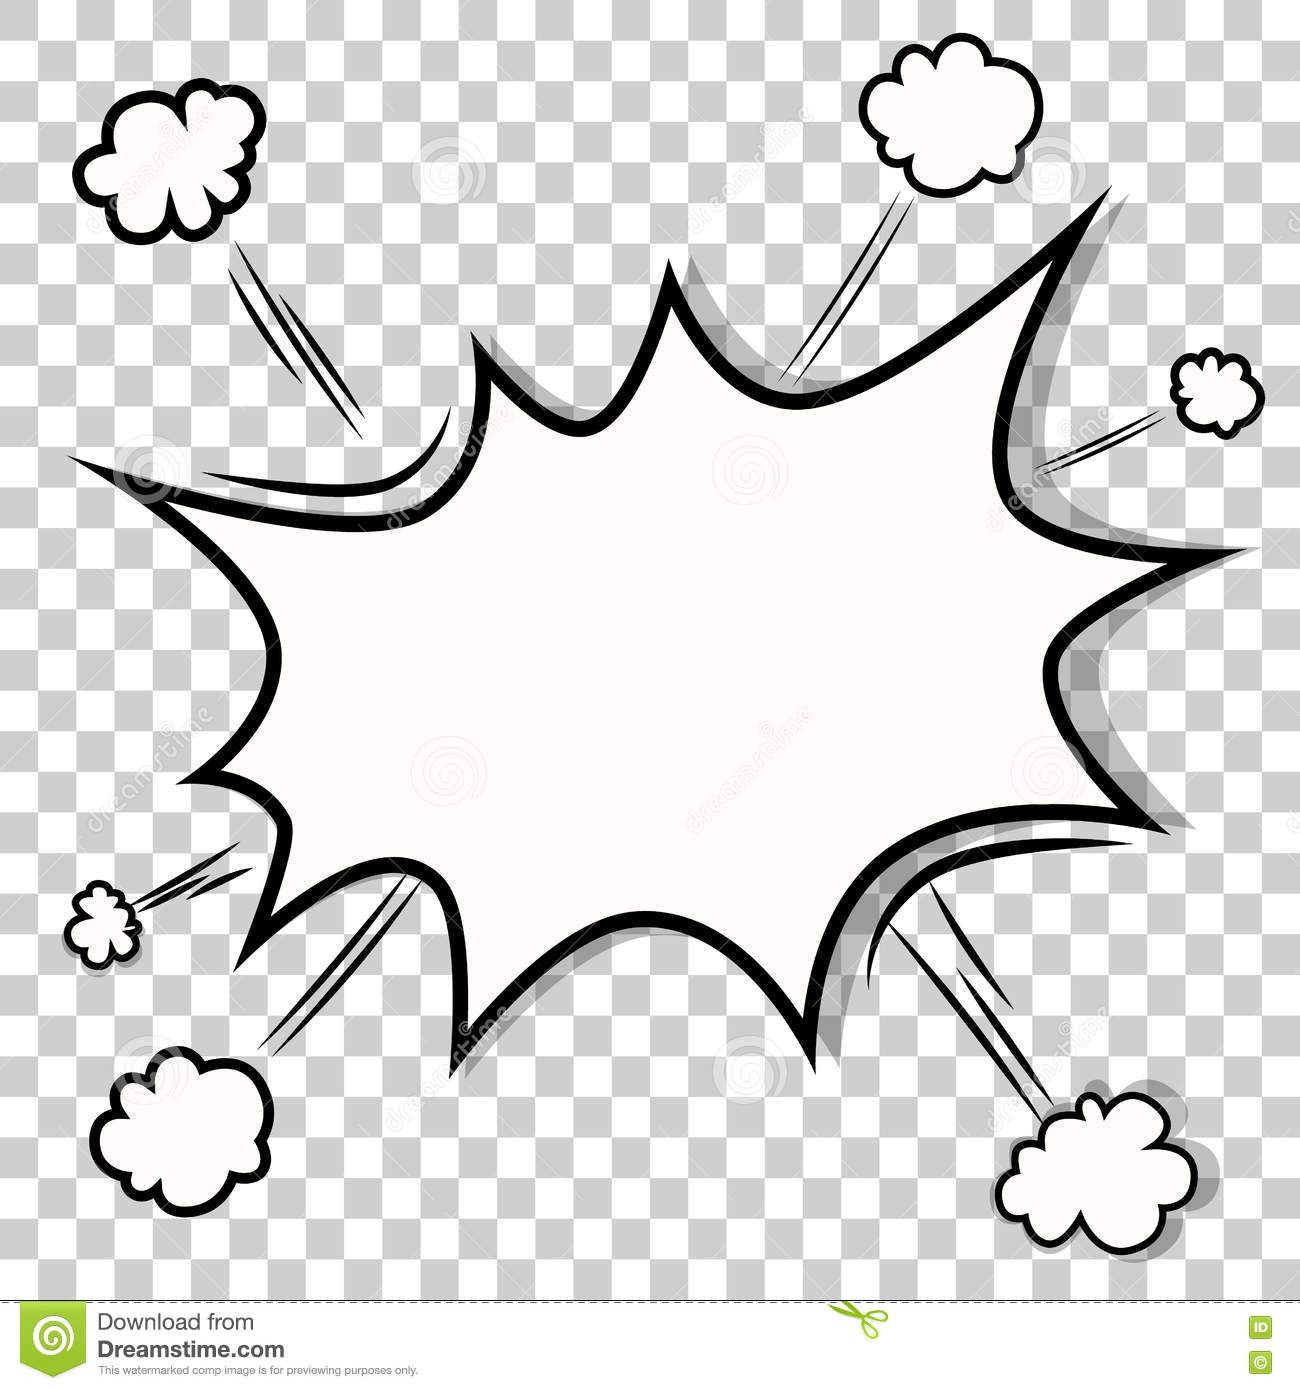 Transparent Template Boom Comic Book Explosion Bomb Isolated Free Coloring Pictures Pop Art Comic Heart Art Projects